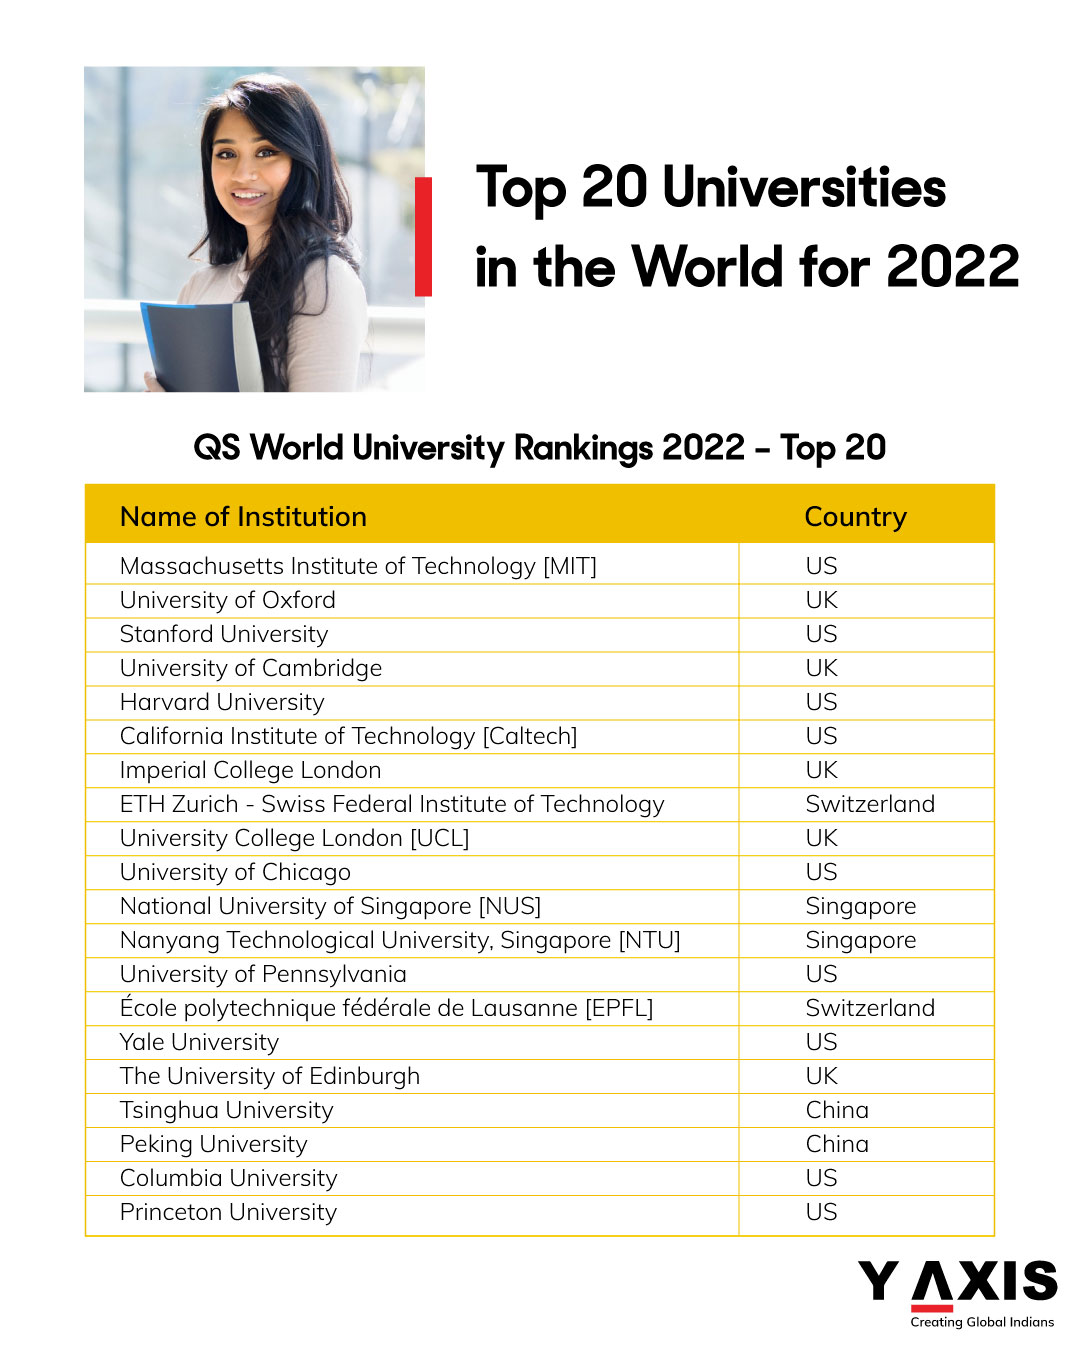 Top 20 Universities in the World for 2022